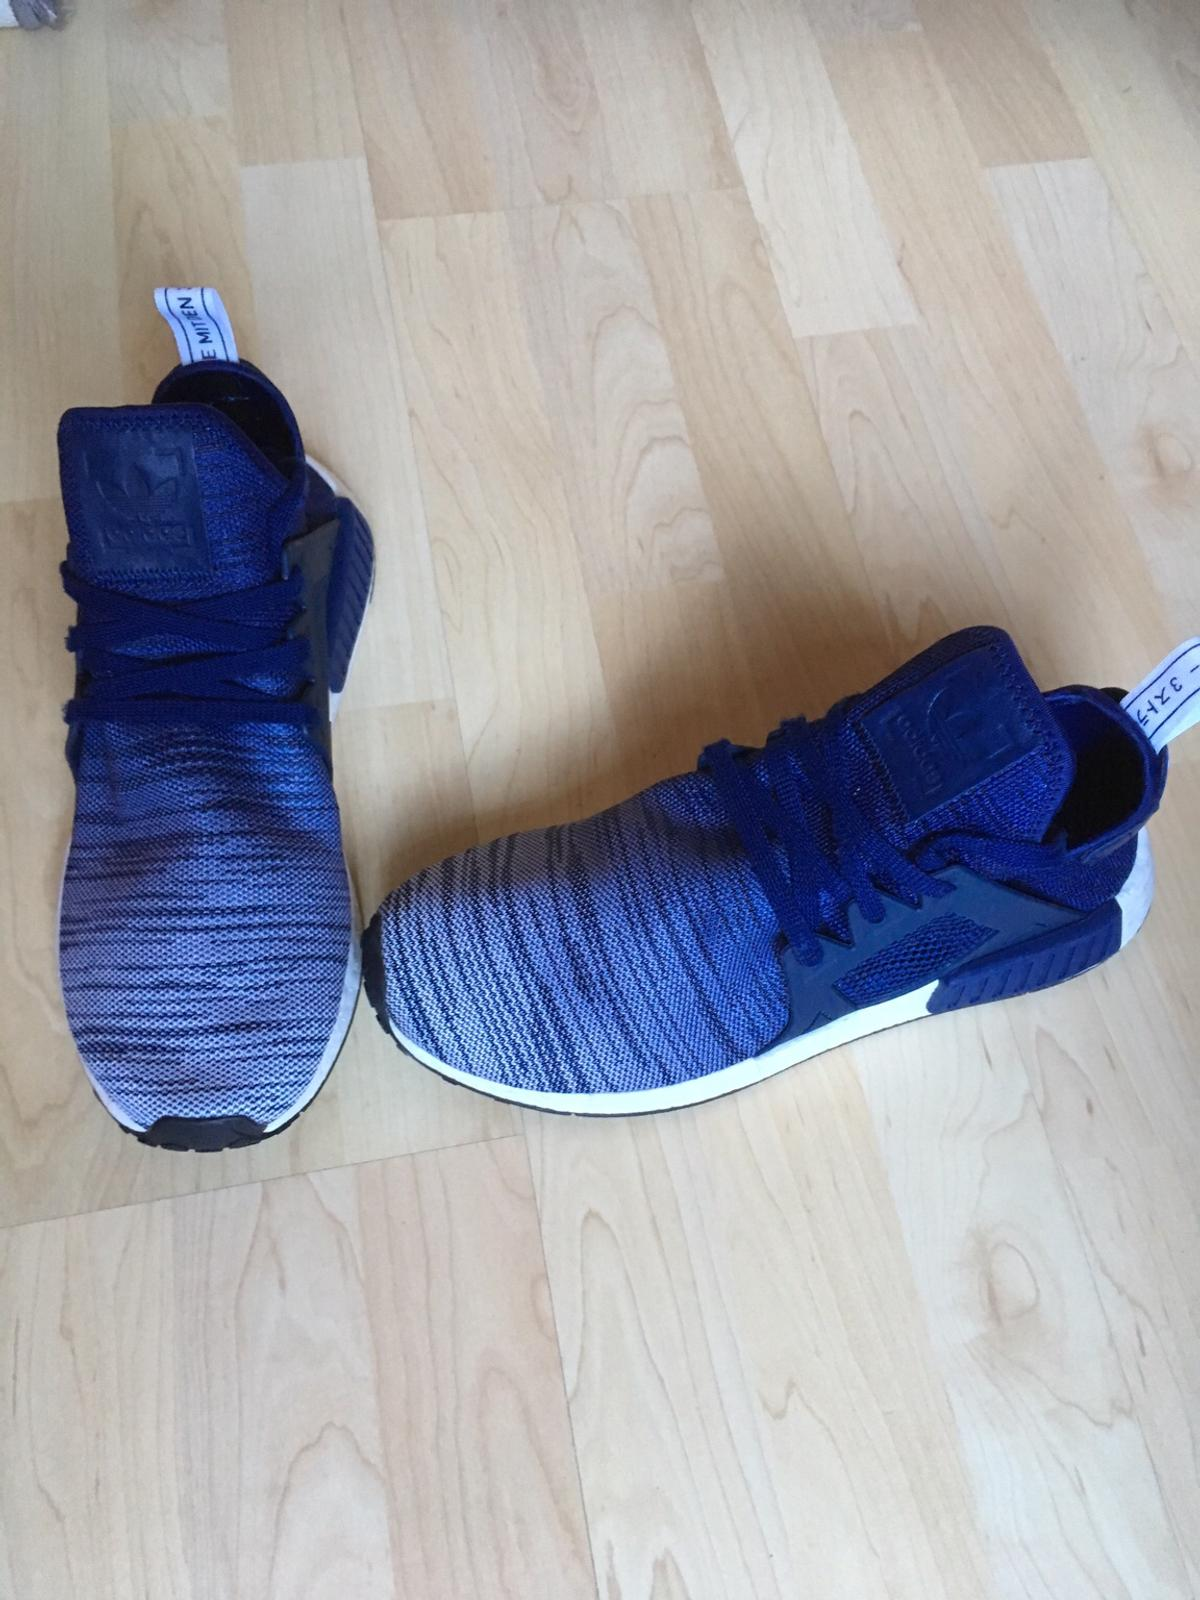 MENS GENUINE ADIDAS NMD TRAINERS Size 11